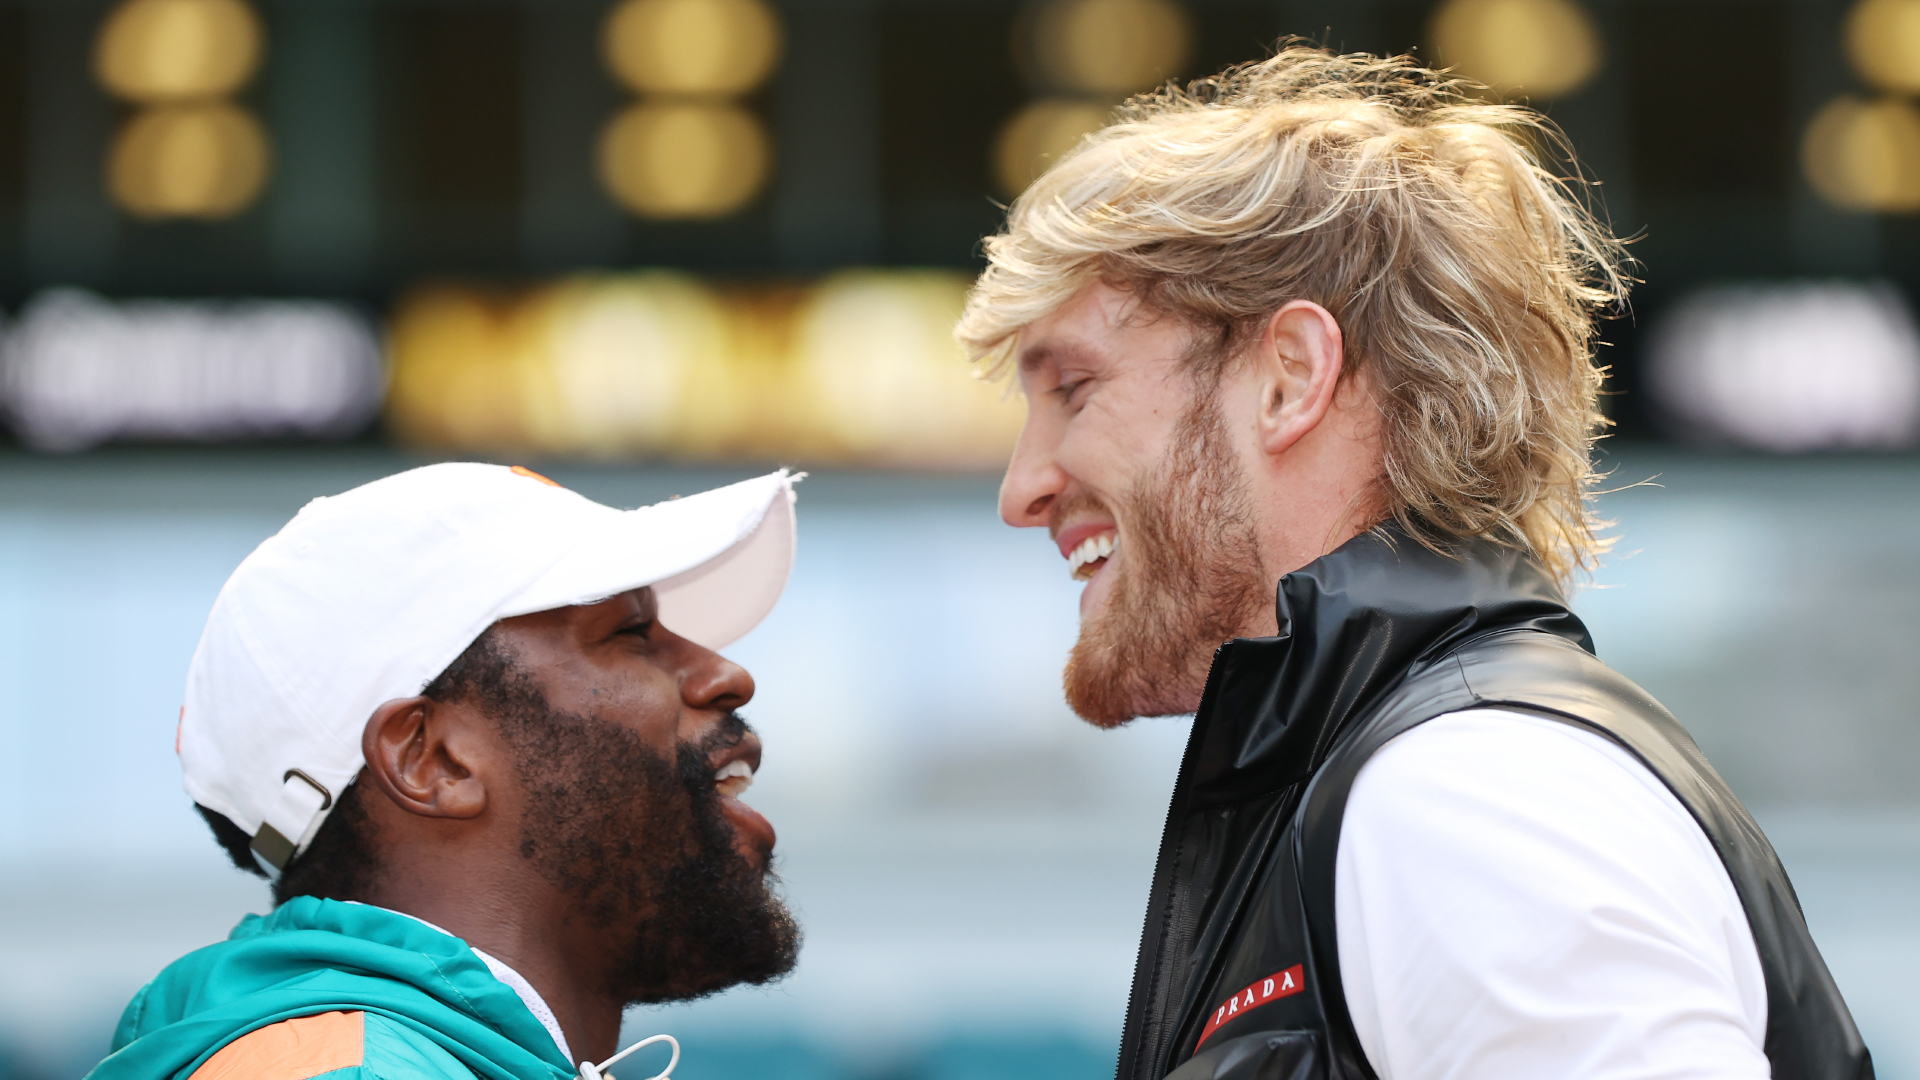 Mayweather Vs Logan Paul Time : When is the floyd mayweather vs.